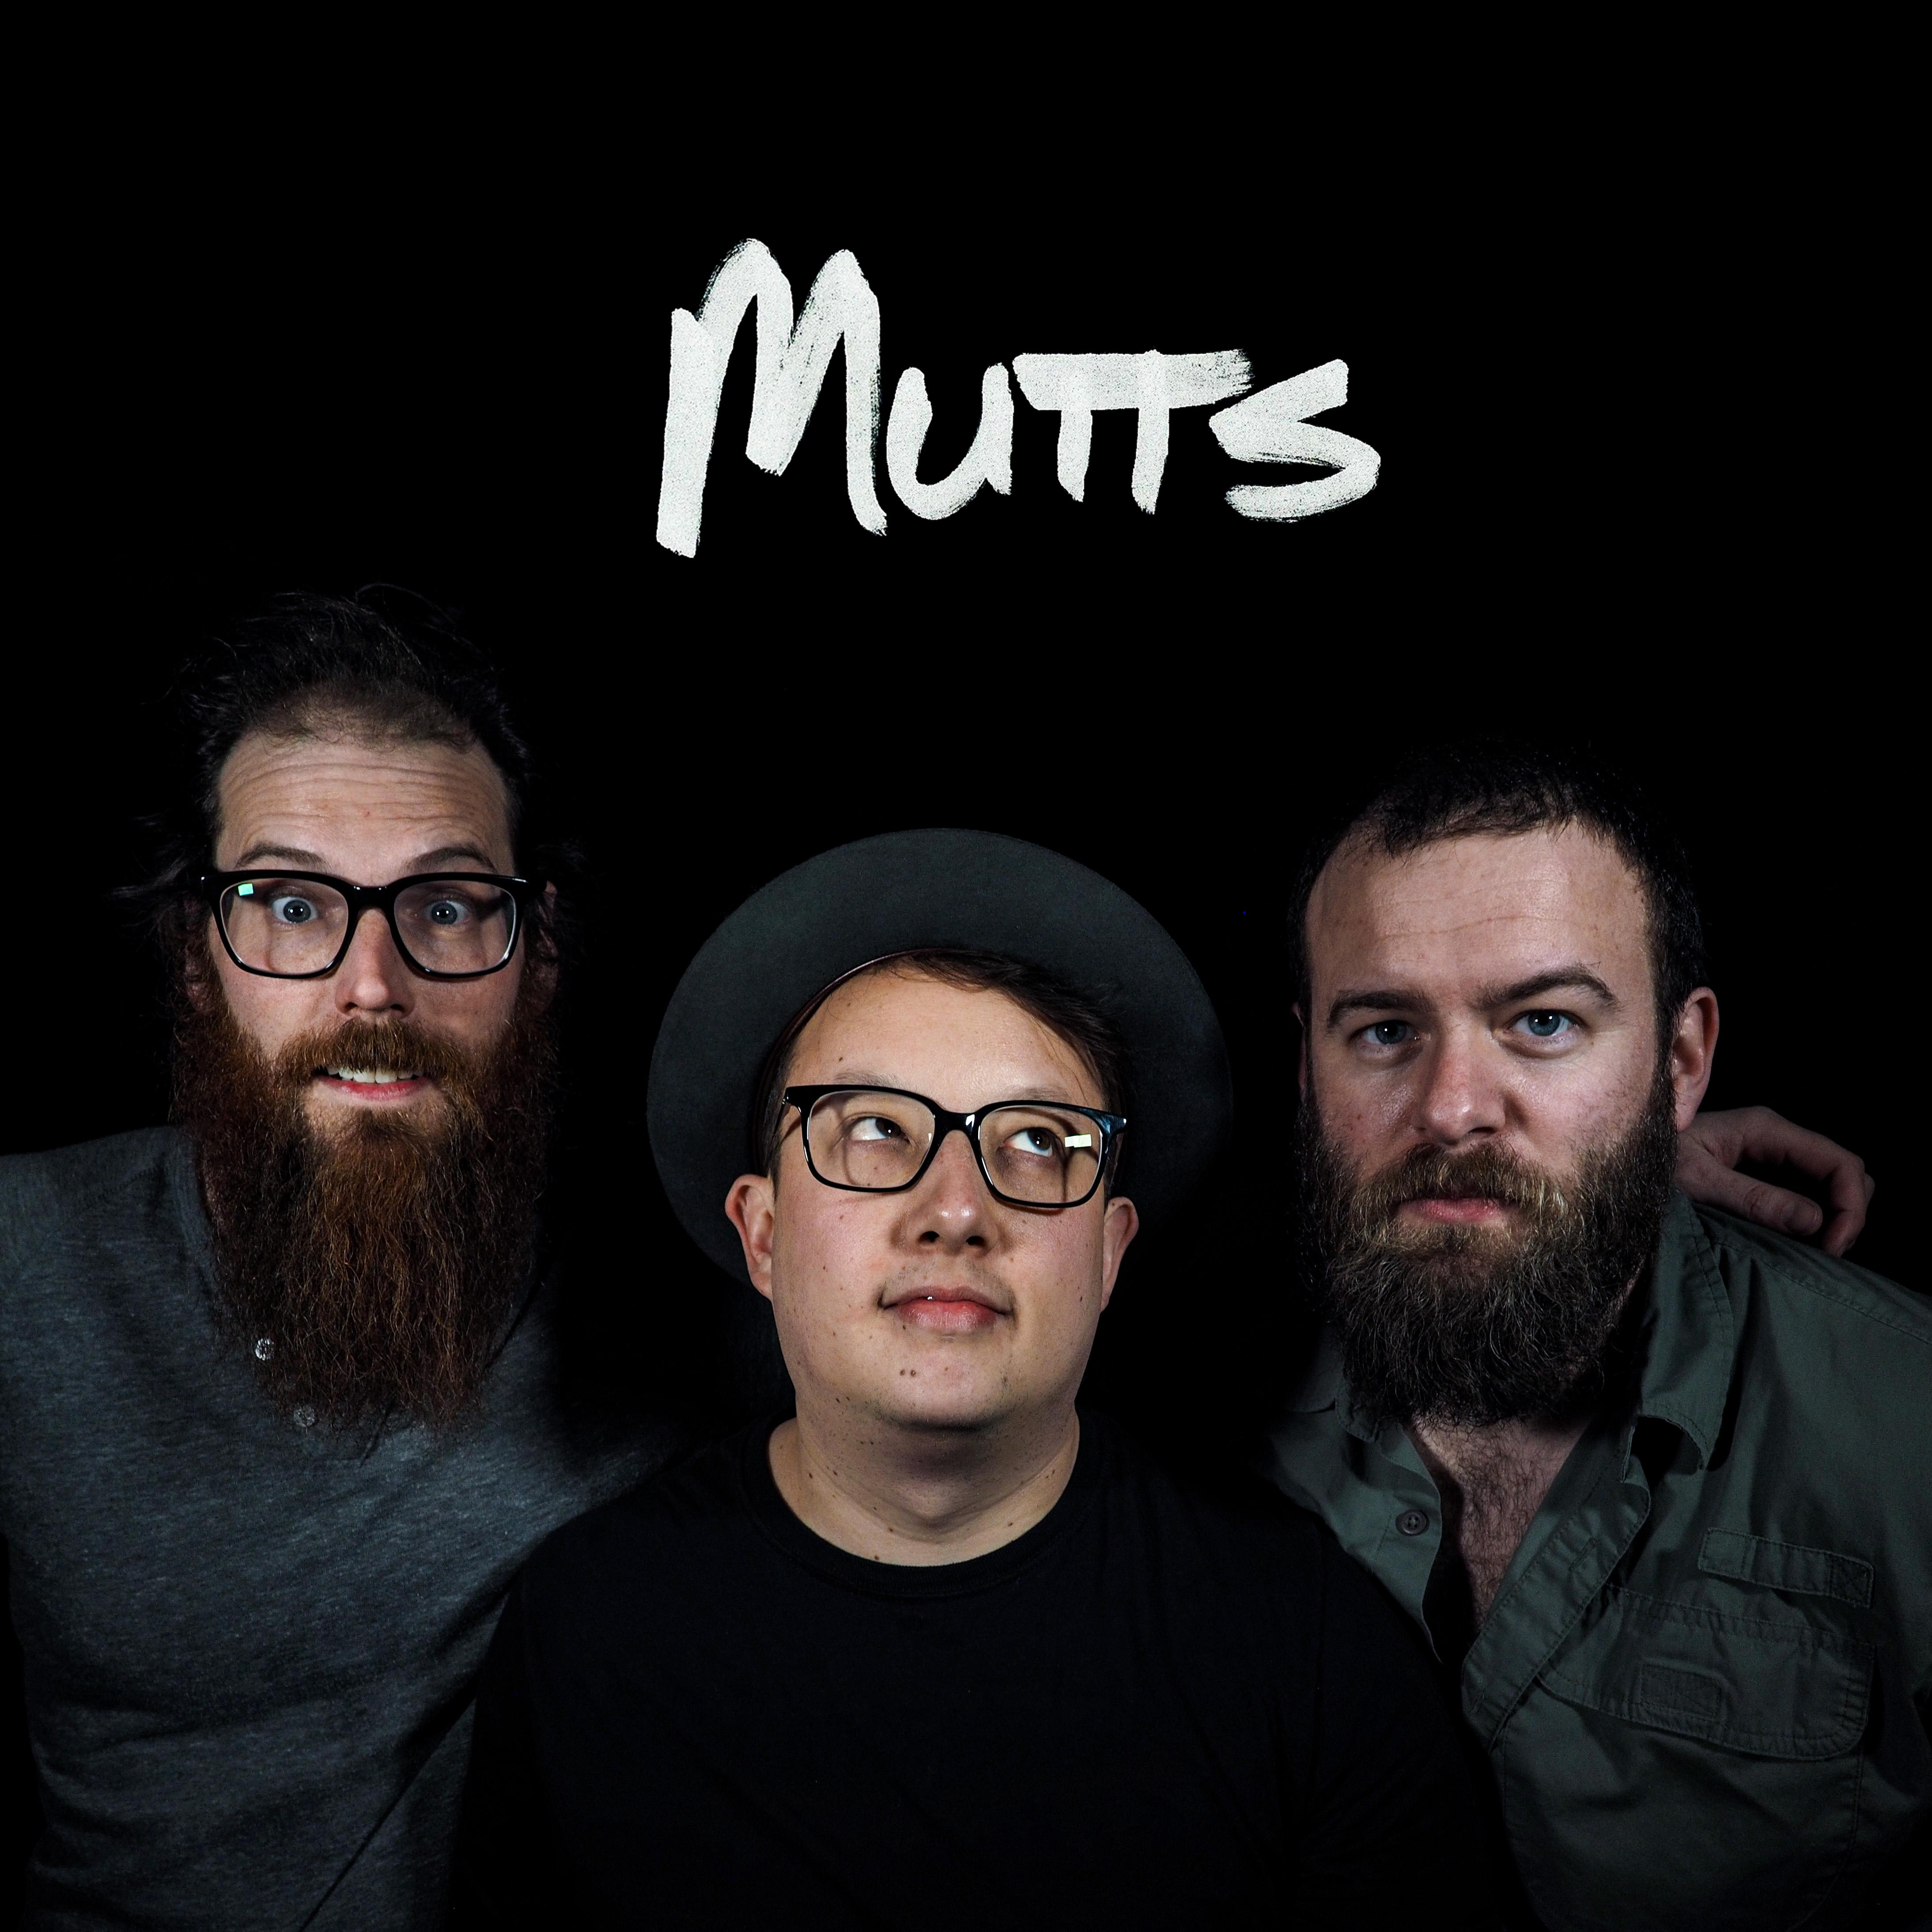 Mutts are set to perform at Mile of Music in Appleton this August, 2019 (Courtesy: Mutts)